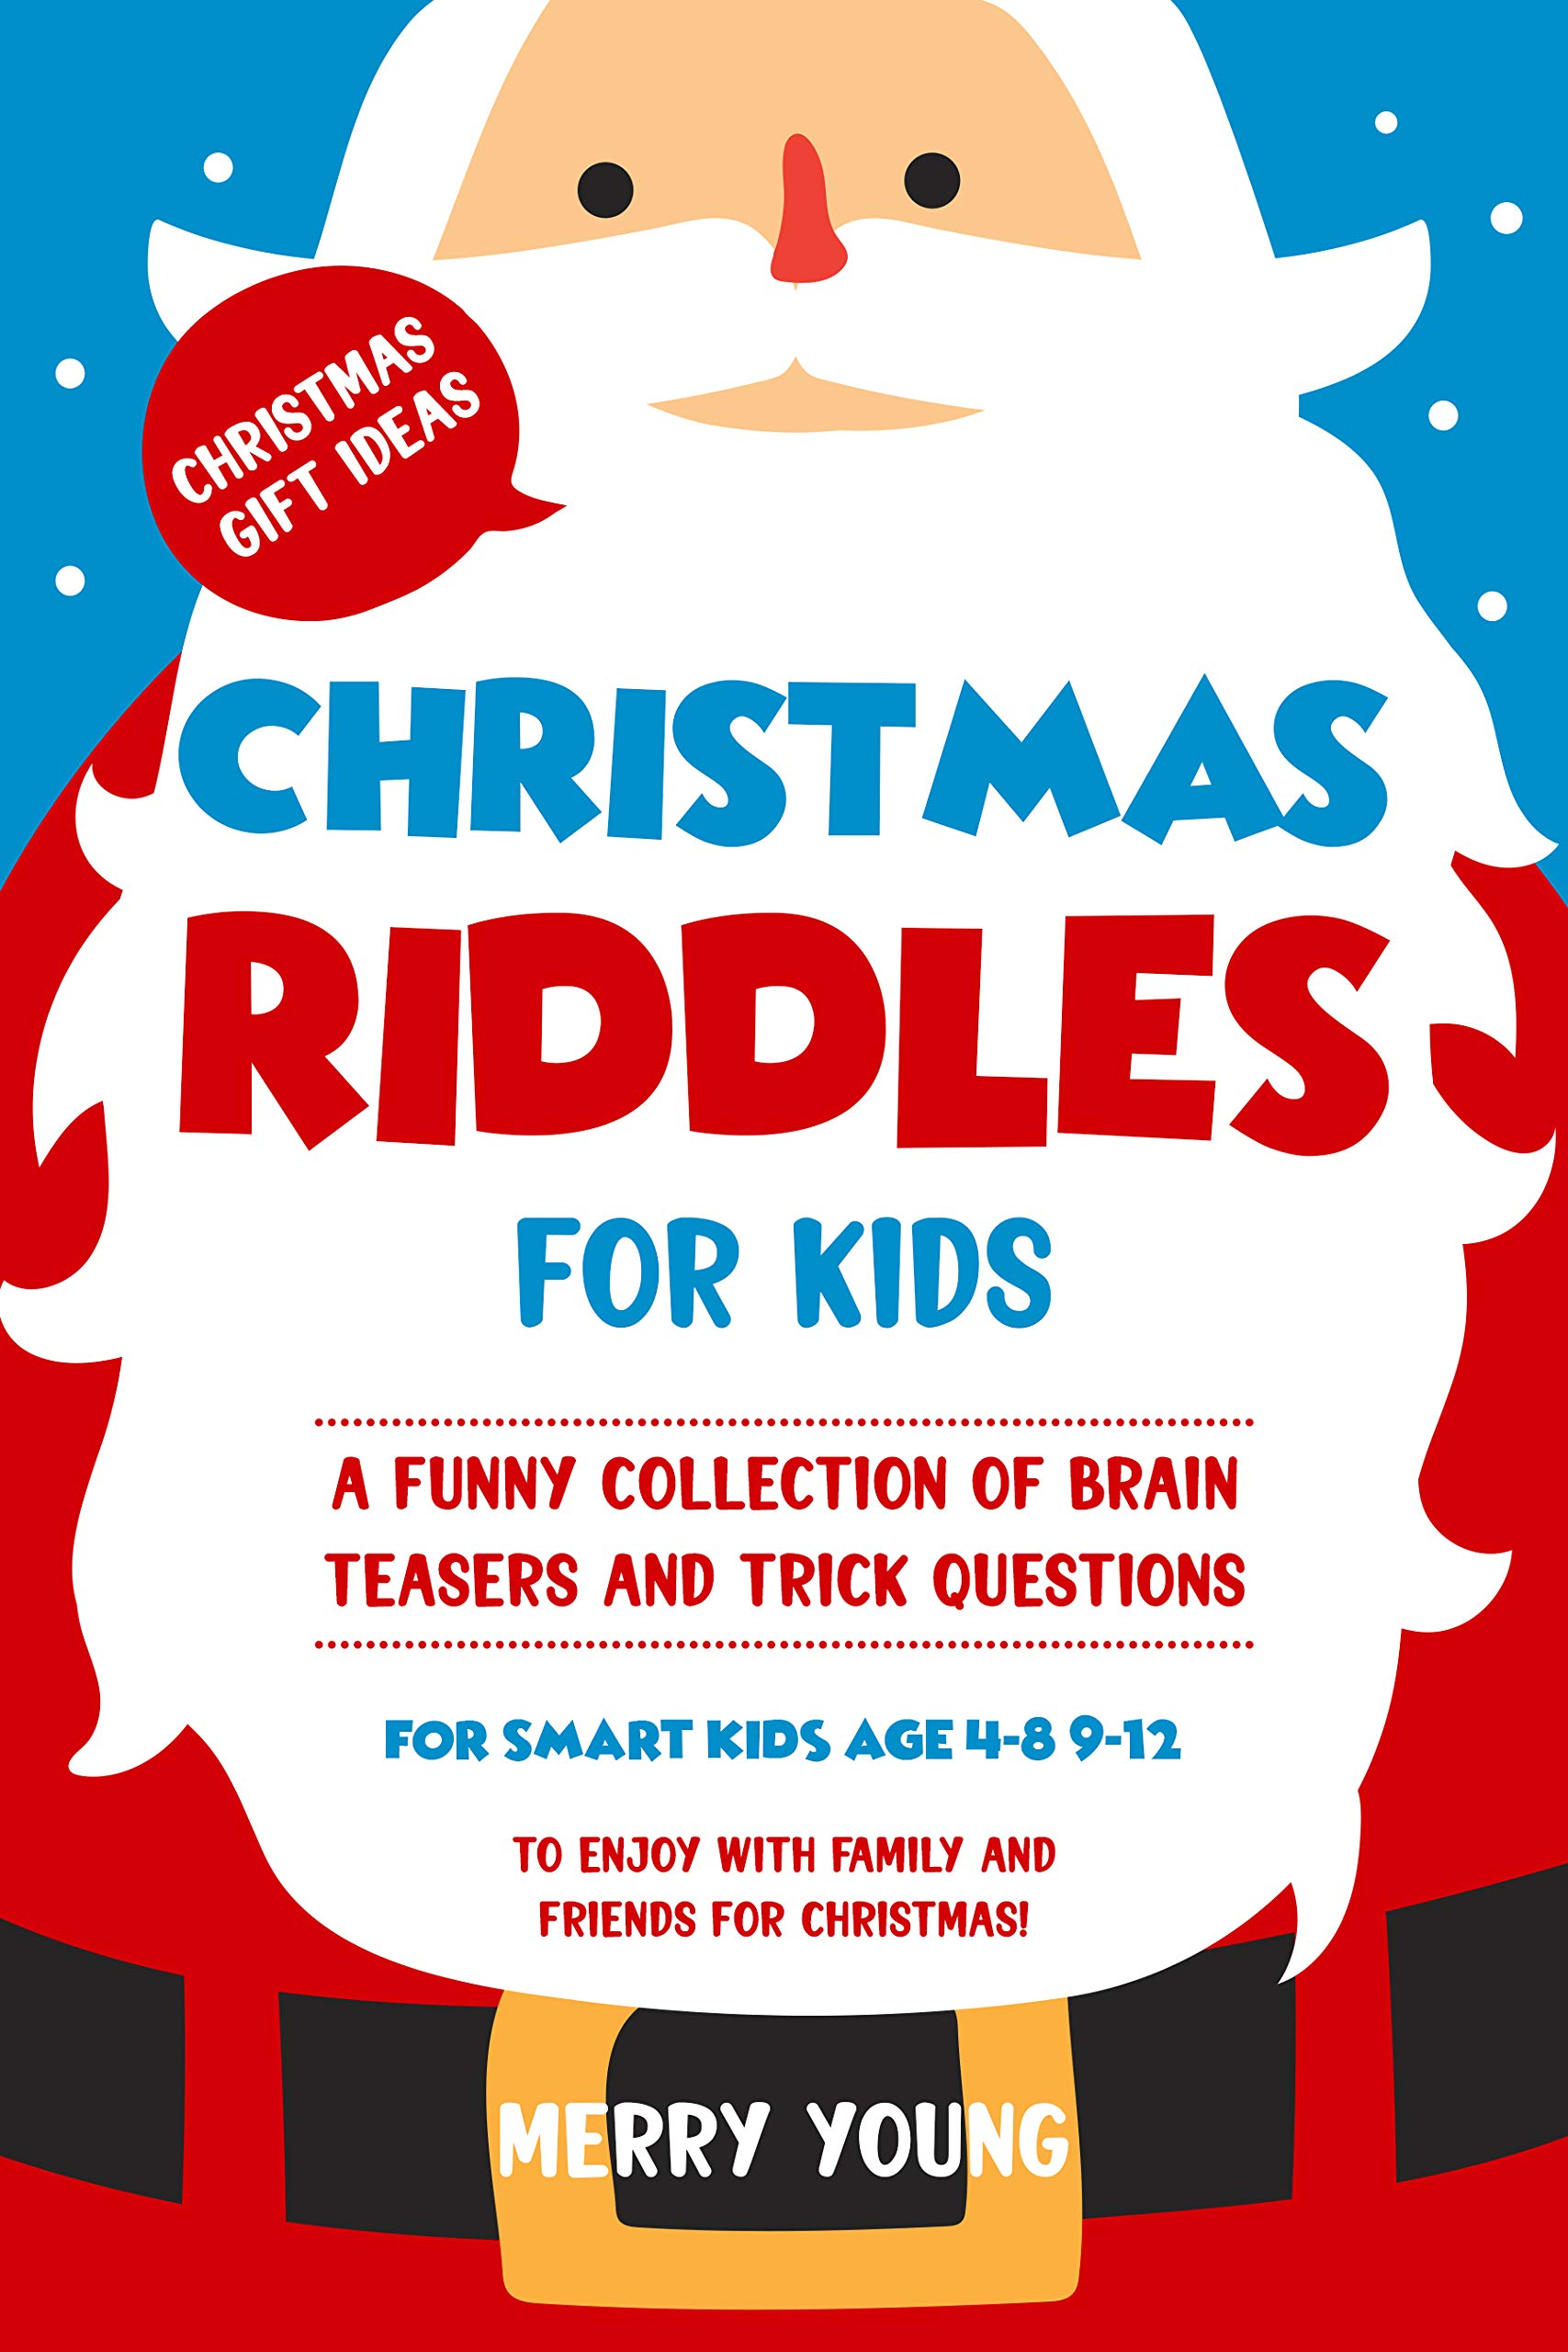 Christmas Riddles for Kids: A Funny Collection of Brain Teasers and Trick Questions for Smart Kids Age 4-8 9-12 to Enjoy With Family and Friends for Christmas!